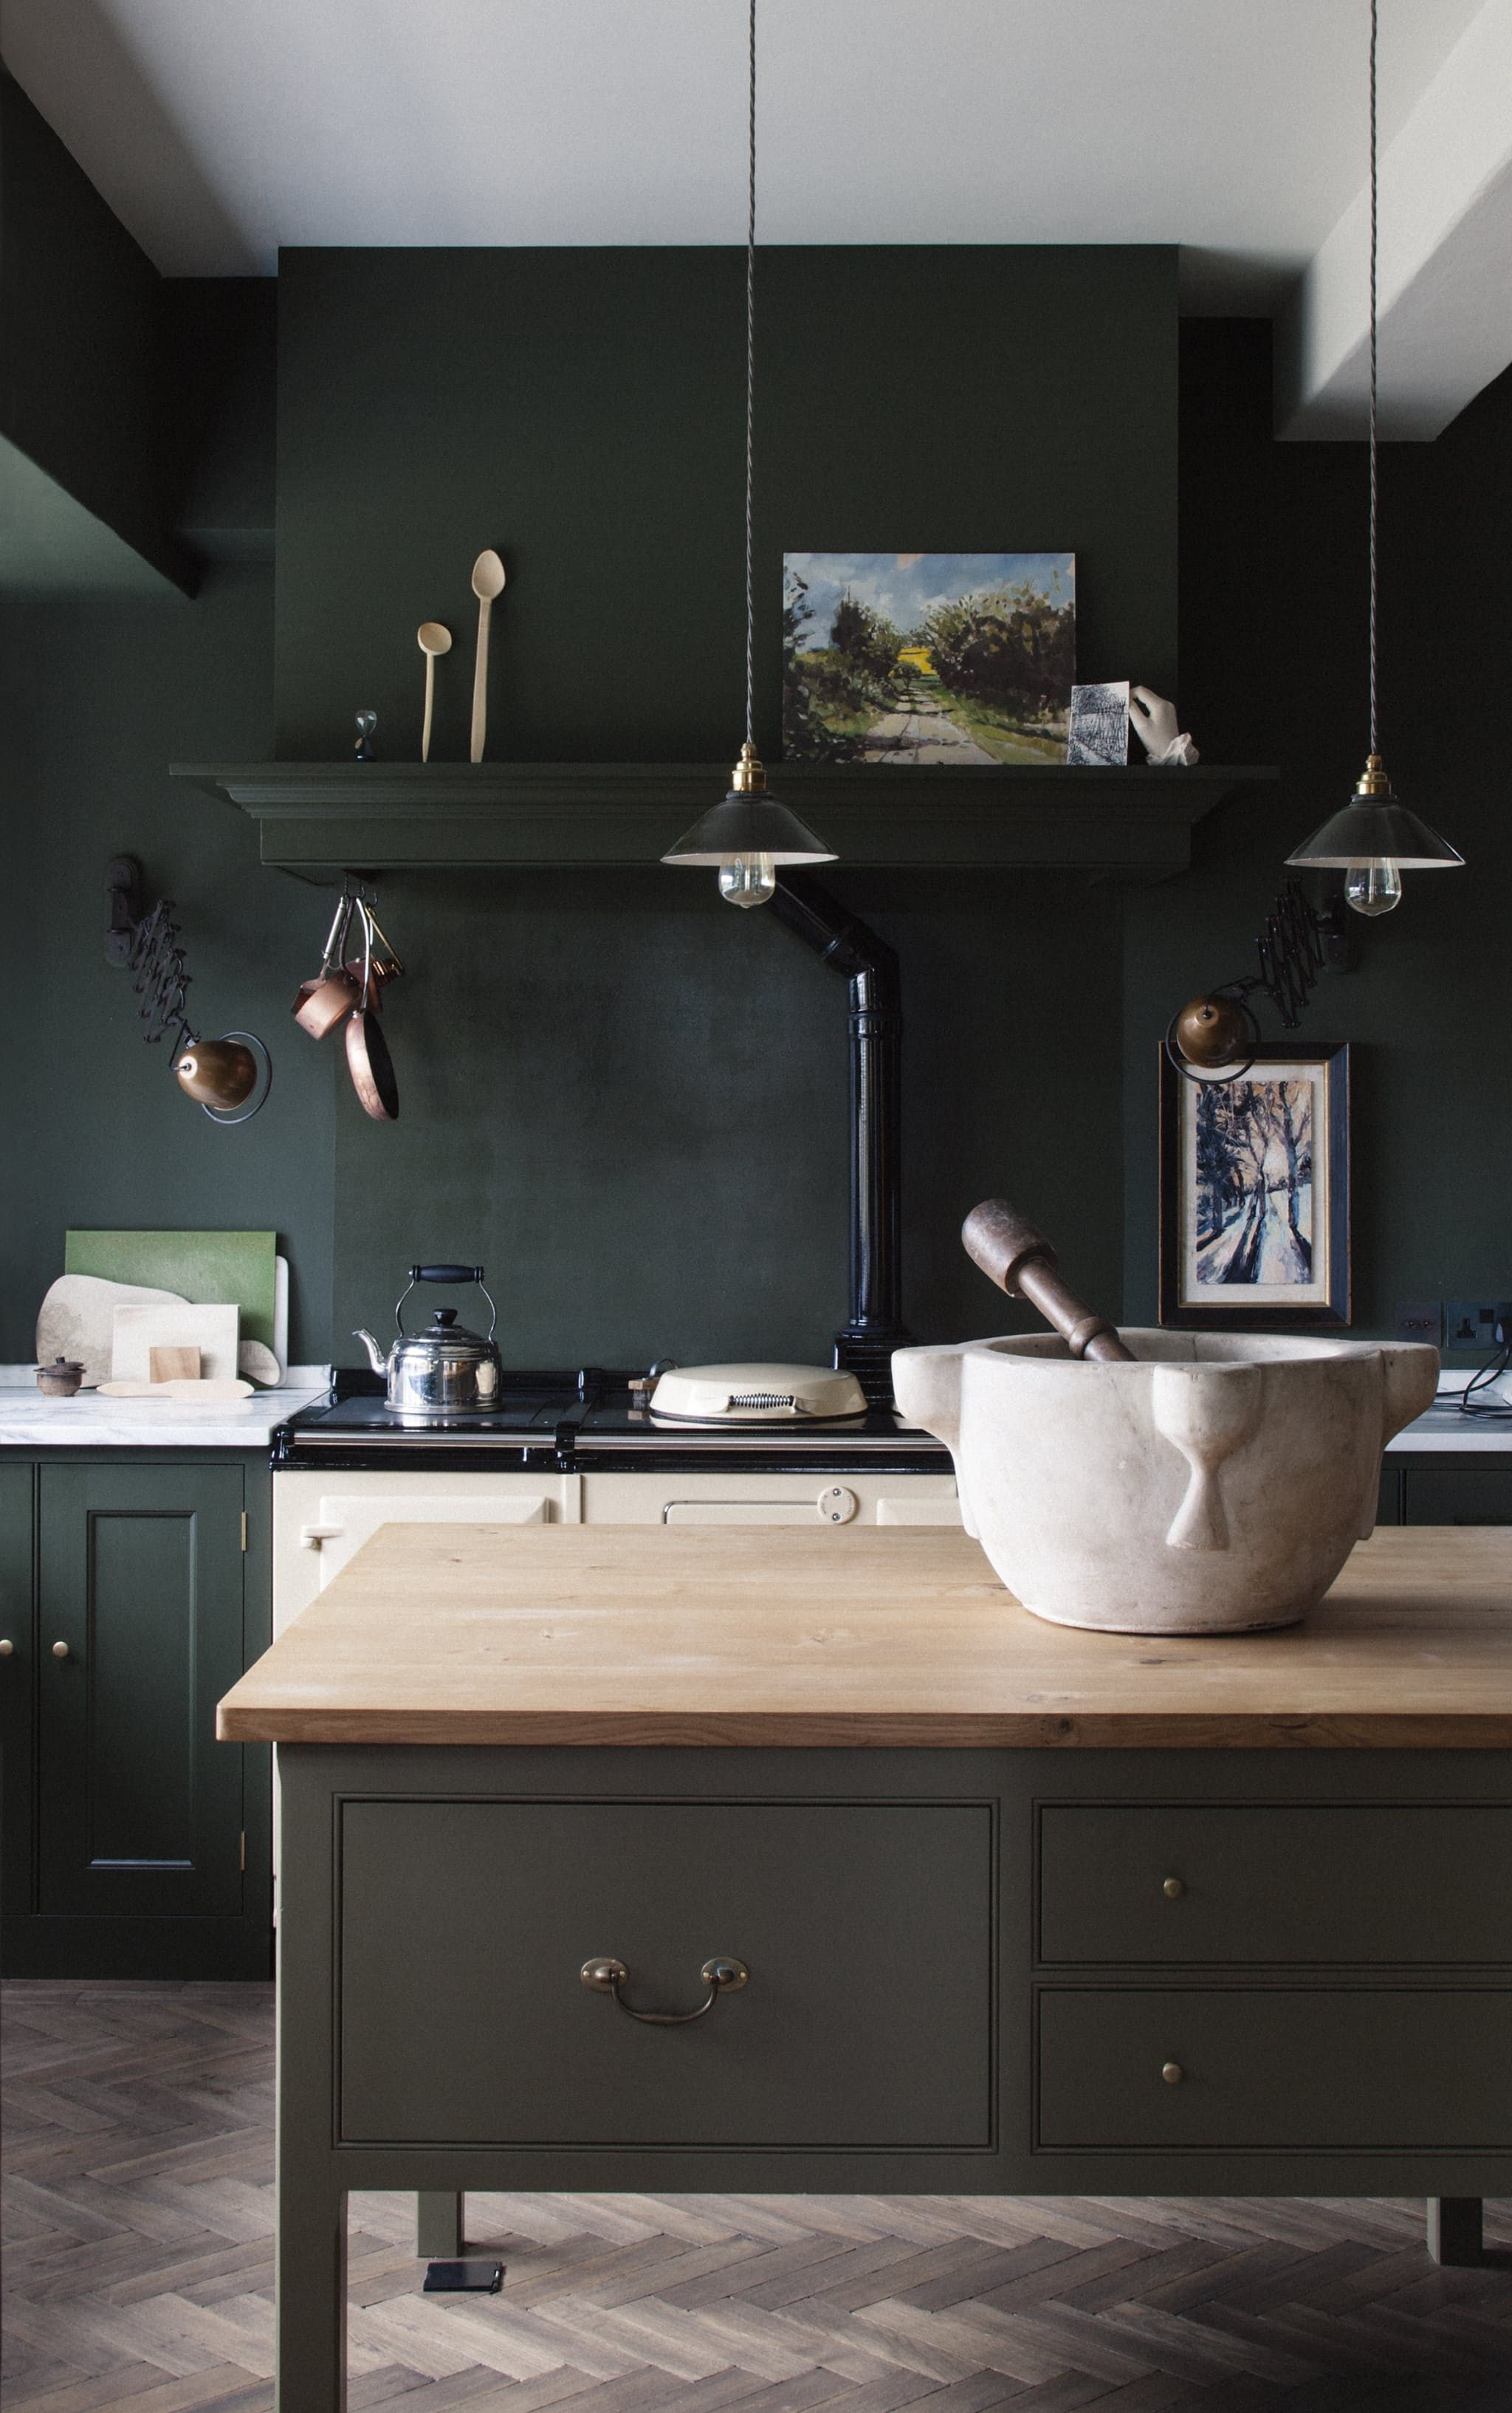 Forget pantone here are our kitchen paint color predictions for